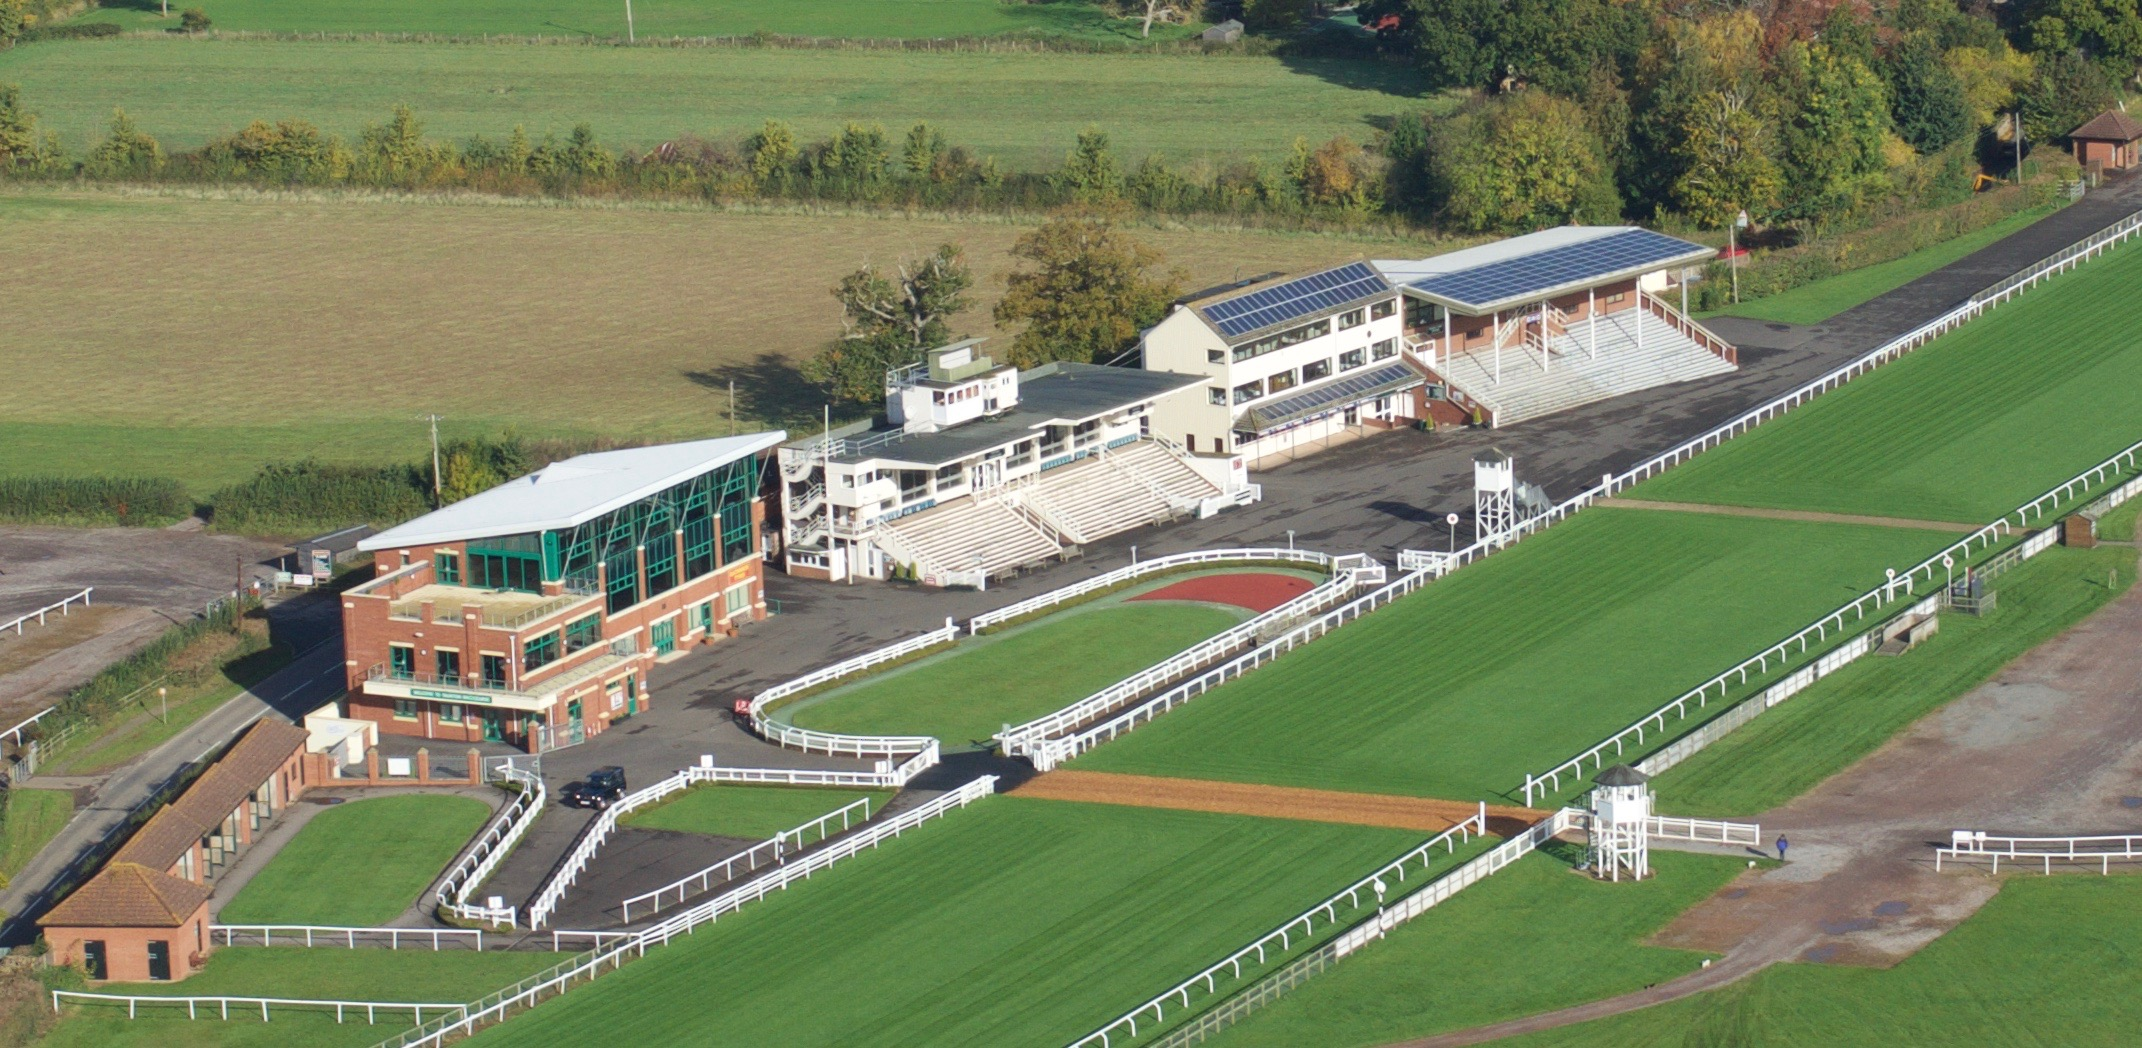 Ariel shot of Taunton of racecourse which will be a large vaccination centre in Somerset